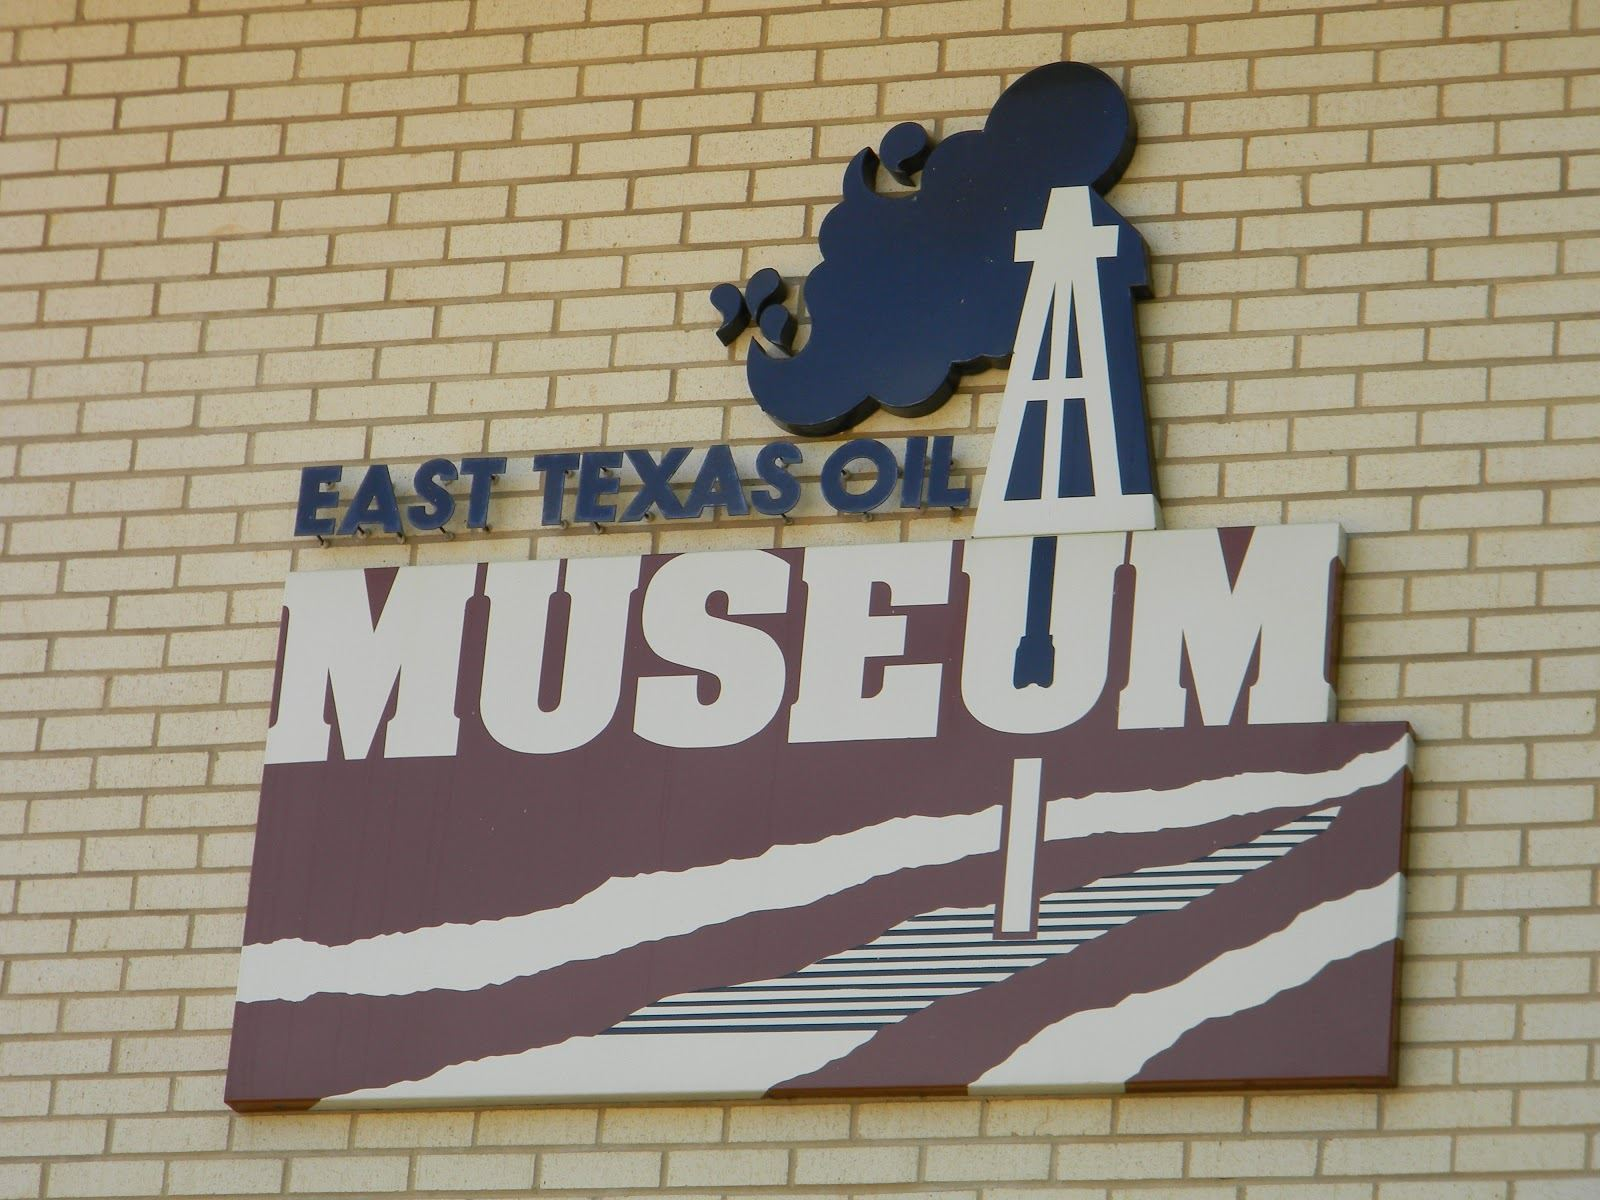 East Texas Oil Museum Sign